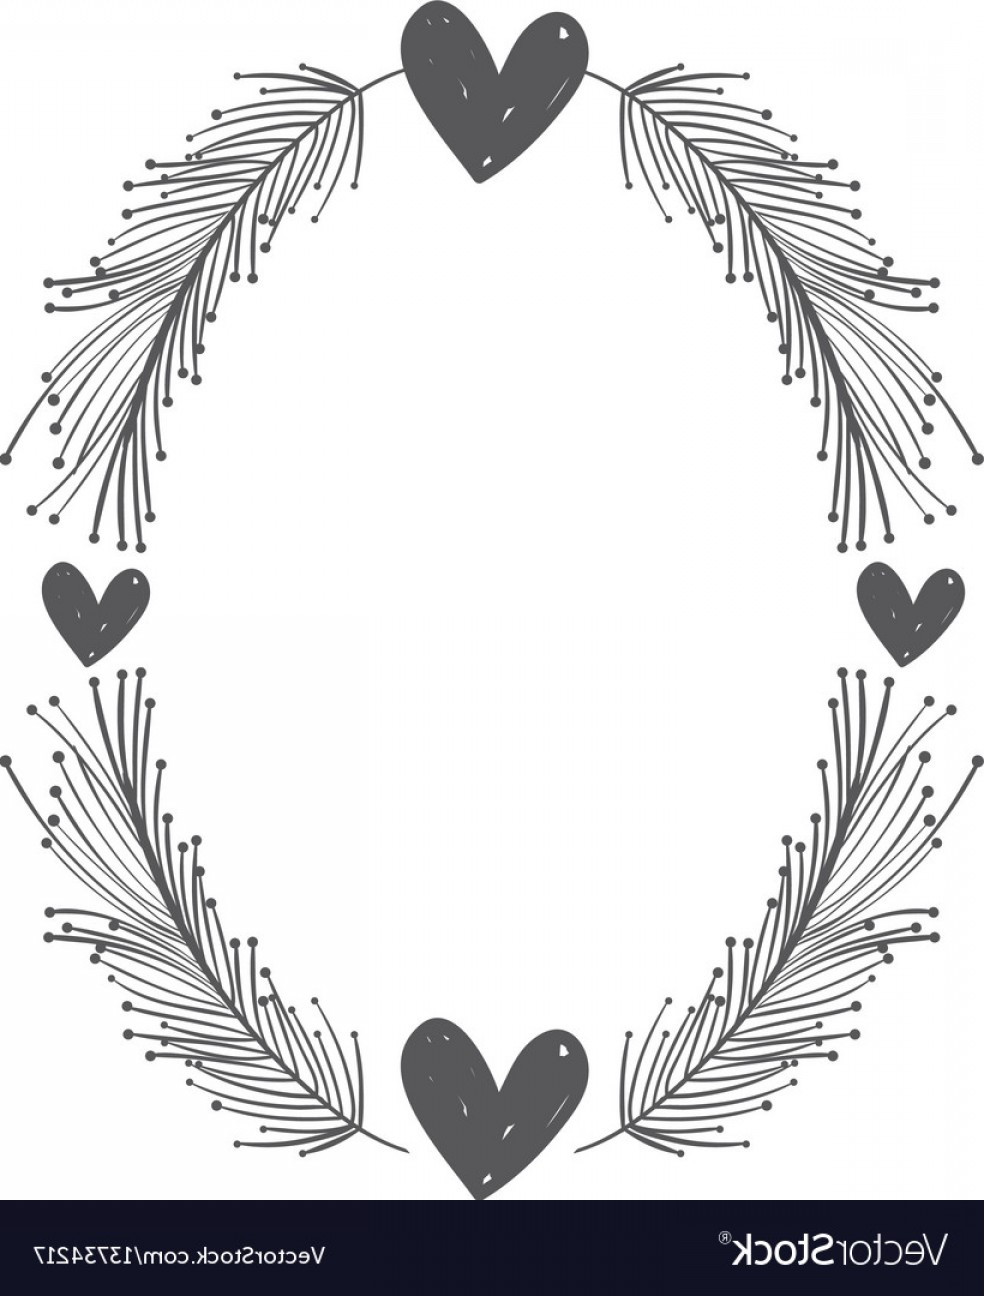 Rustic Heart Vectors: Rustic Feathers With Hearts Decoration Vector